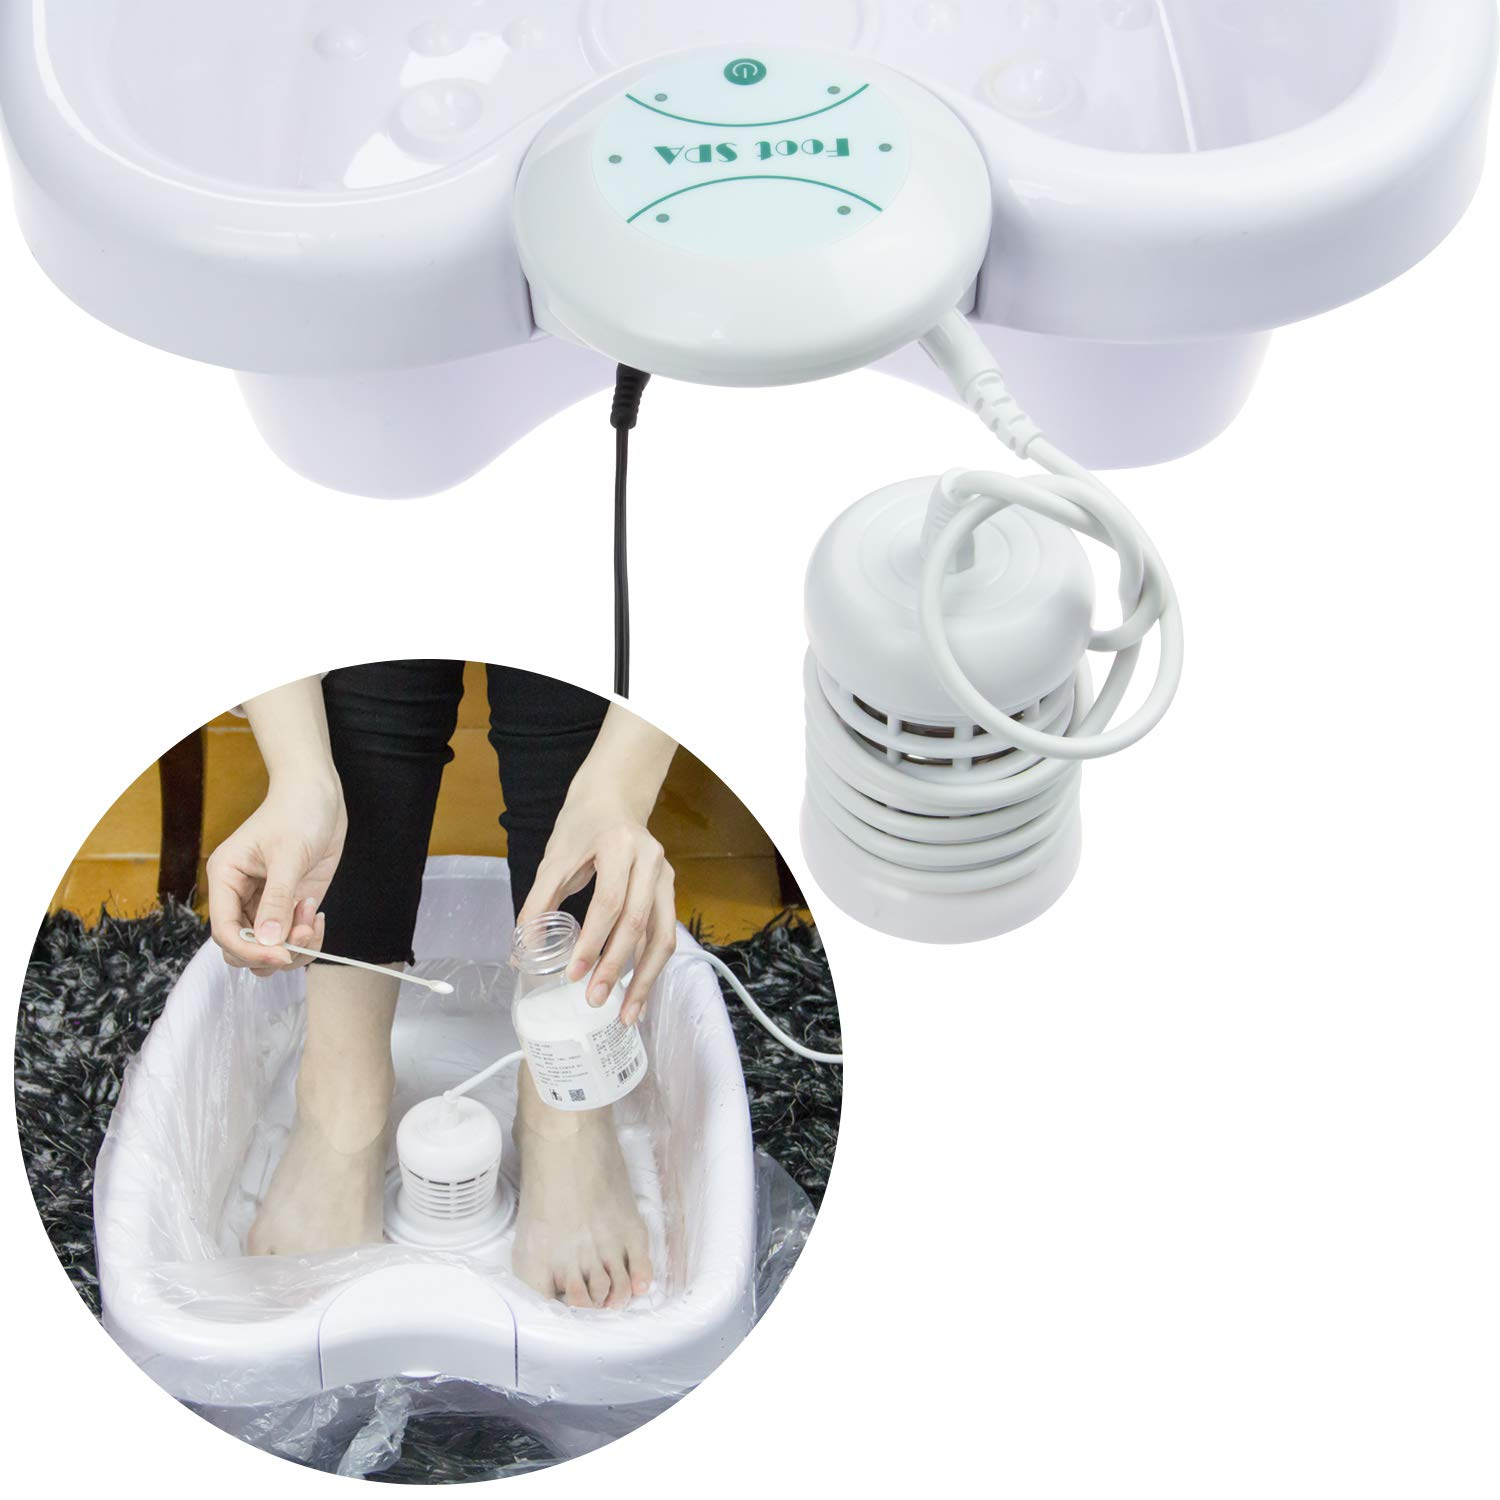 Ionic Detox Foot Bath, Detox Foot Spa Foot Detox Machine with Foot Basin for Home Use Beauty Salon Spa Club or As Holiday Travel Gift(2 White Arrays): Beauty